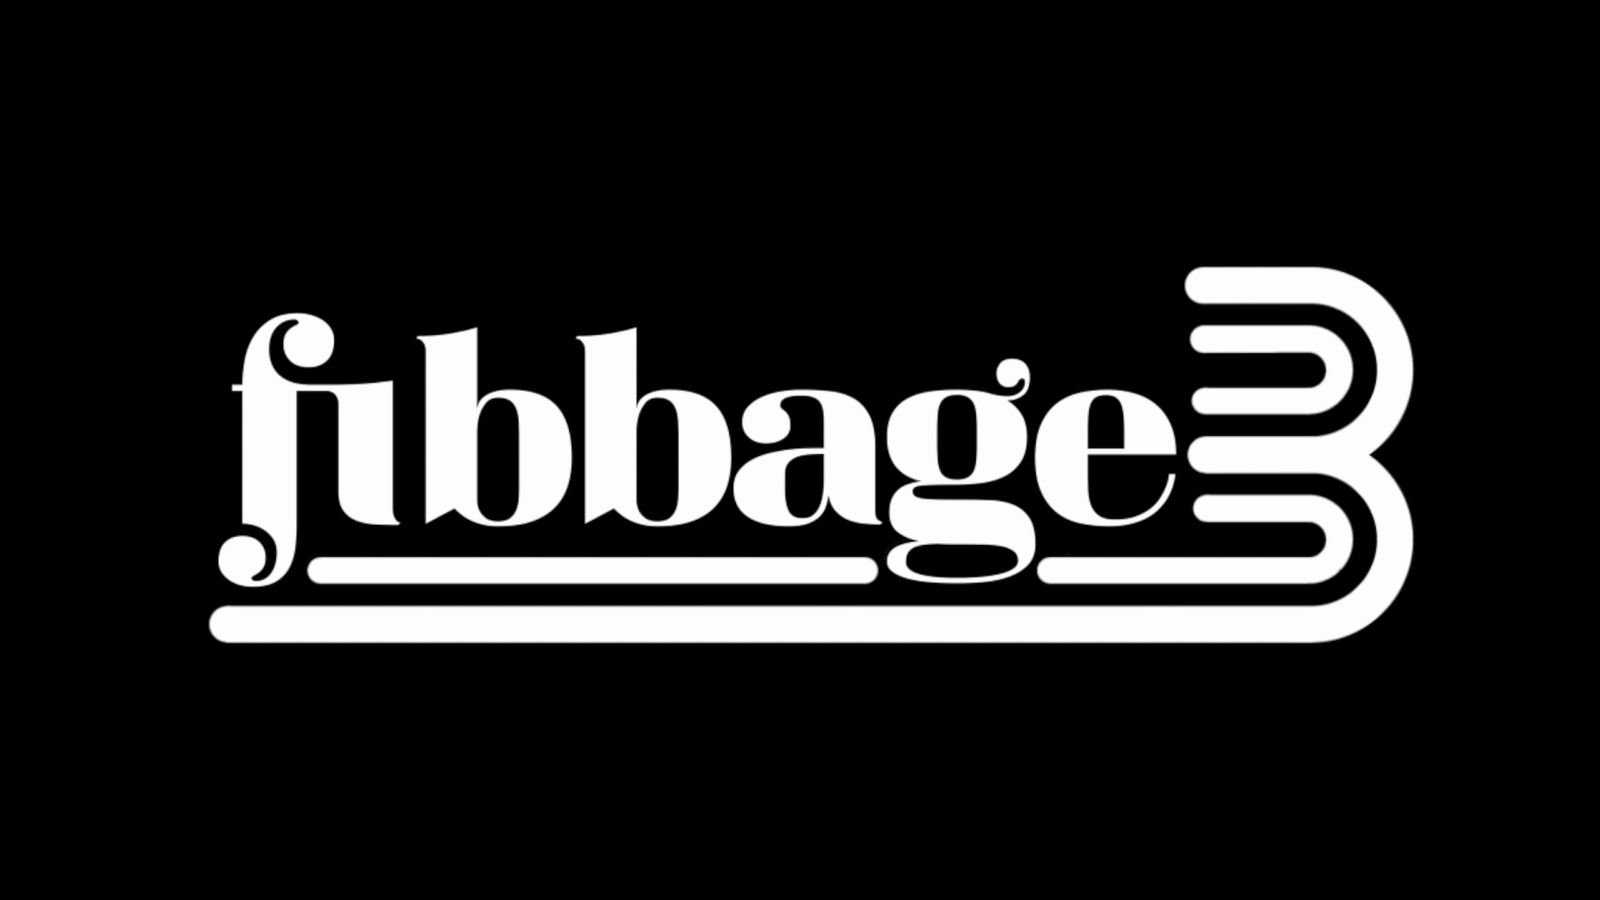 The Jackbox Party Pack 4 includes Fibbage 3, coming this fall